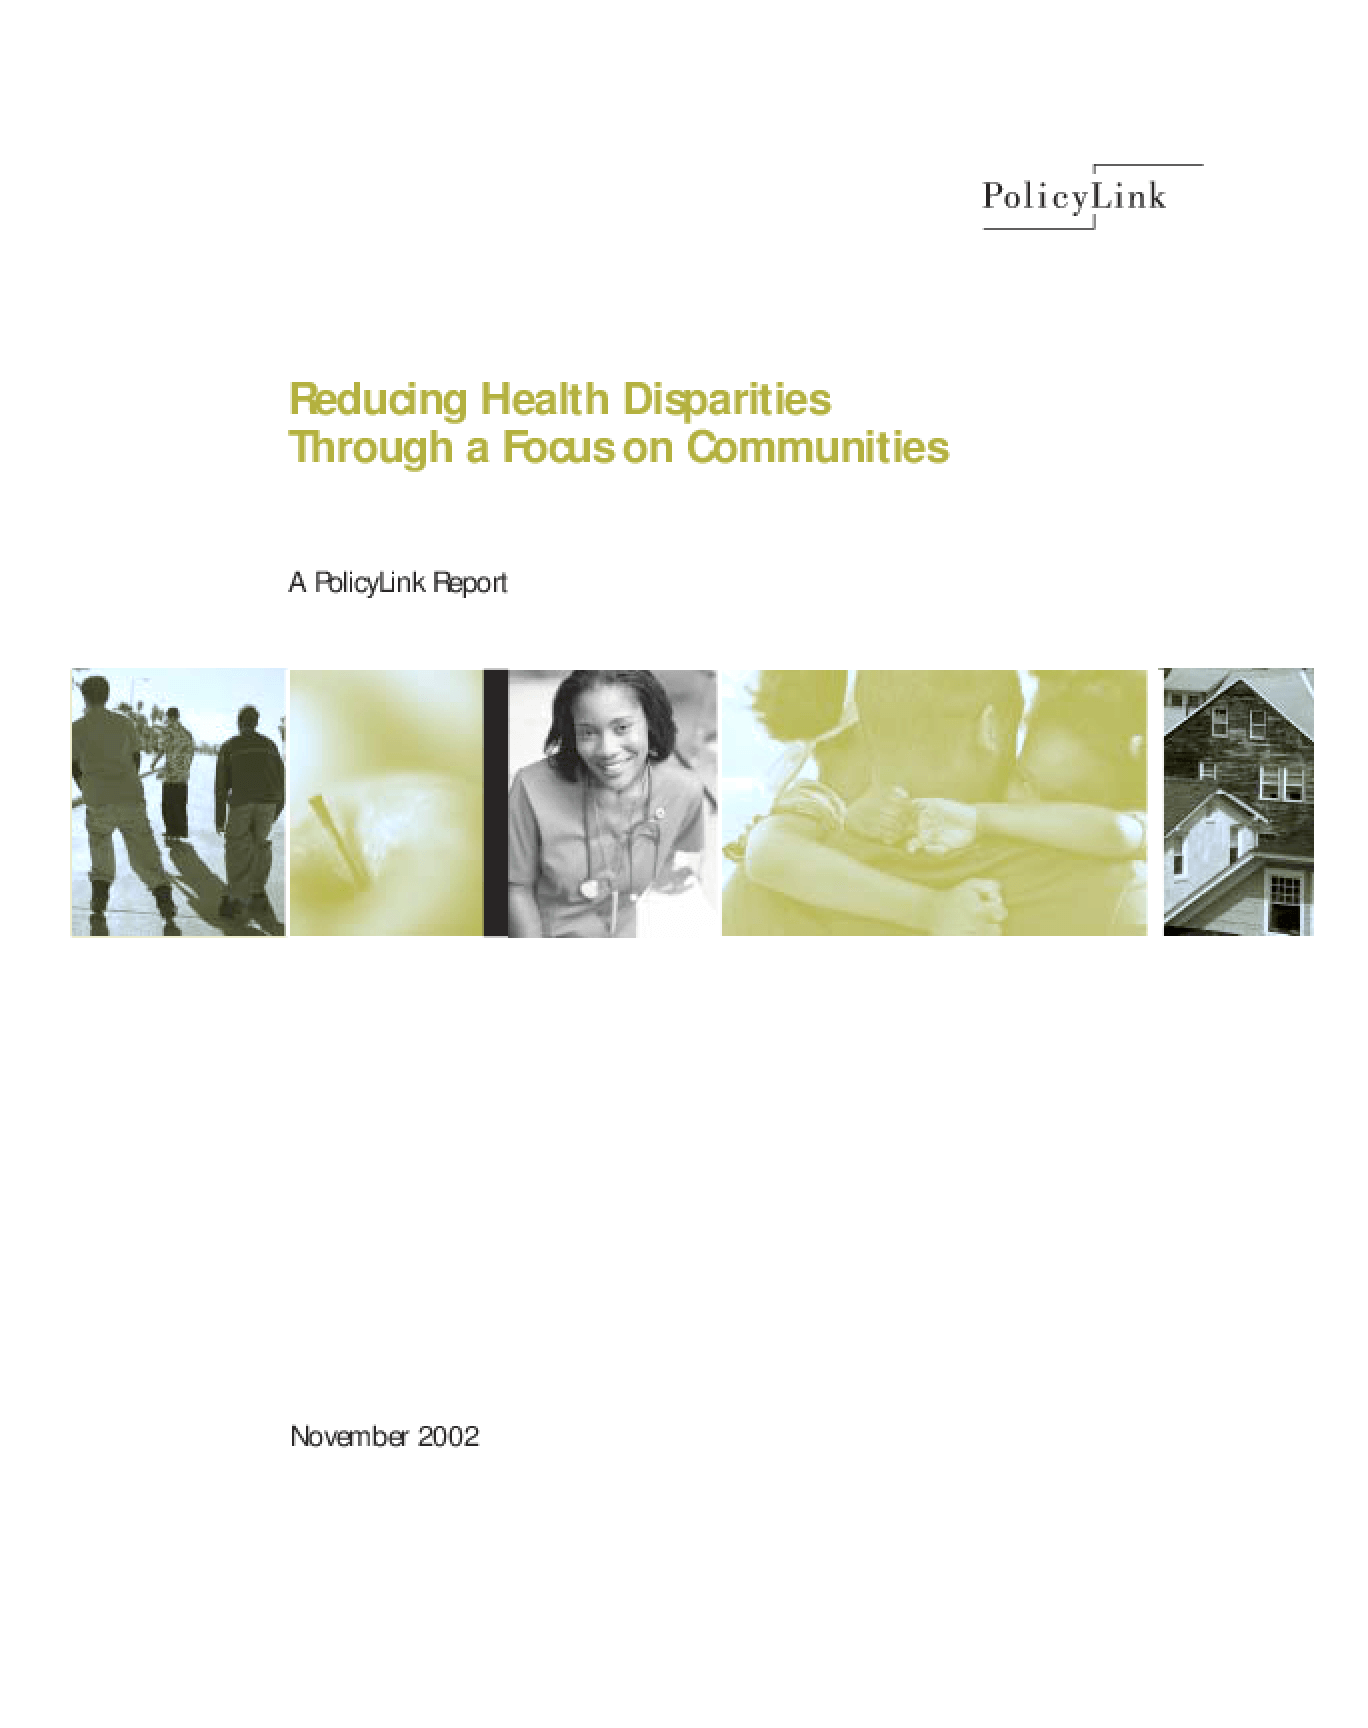 Reducing Health Disparities Through a Focus on Communities